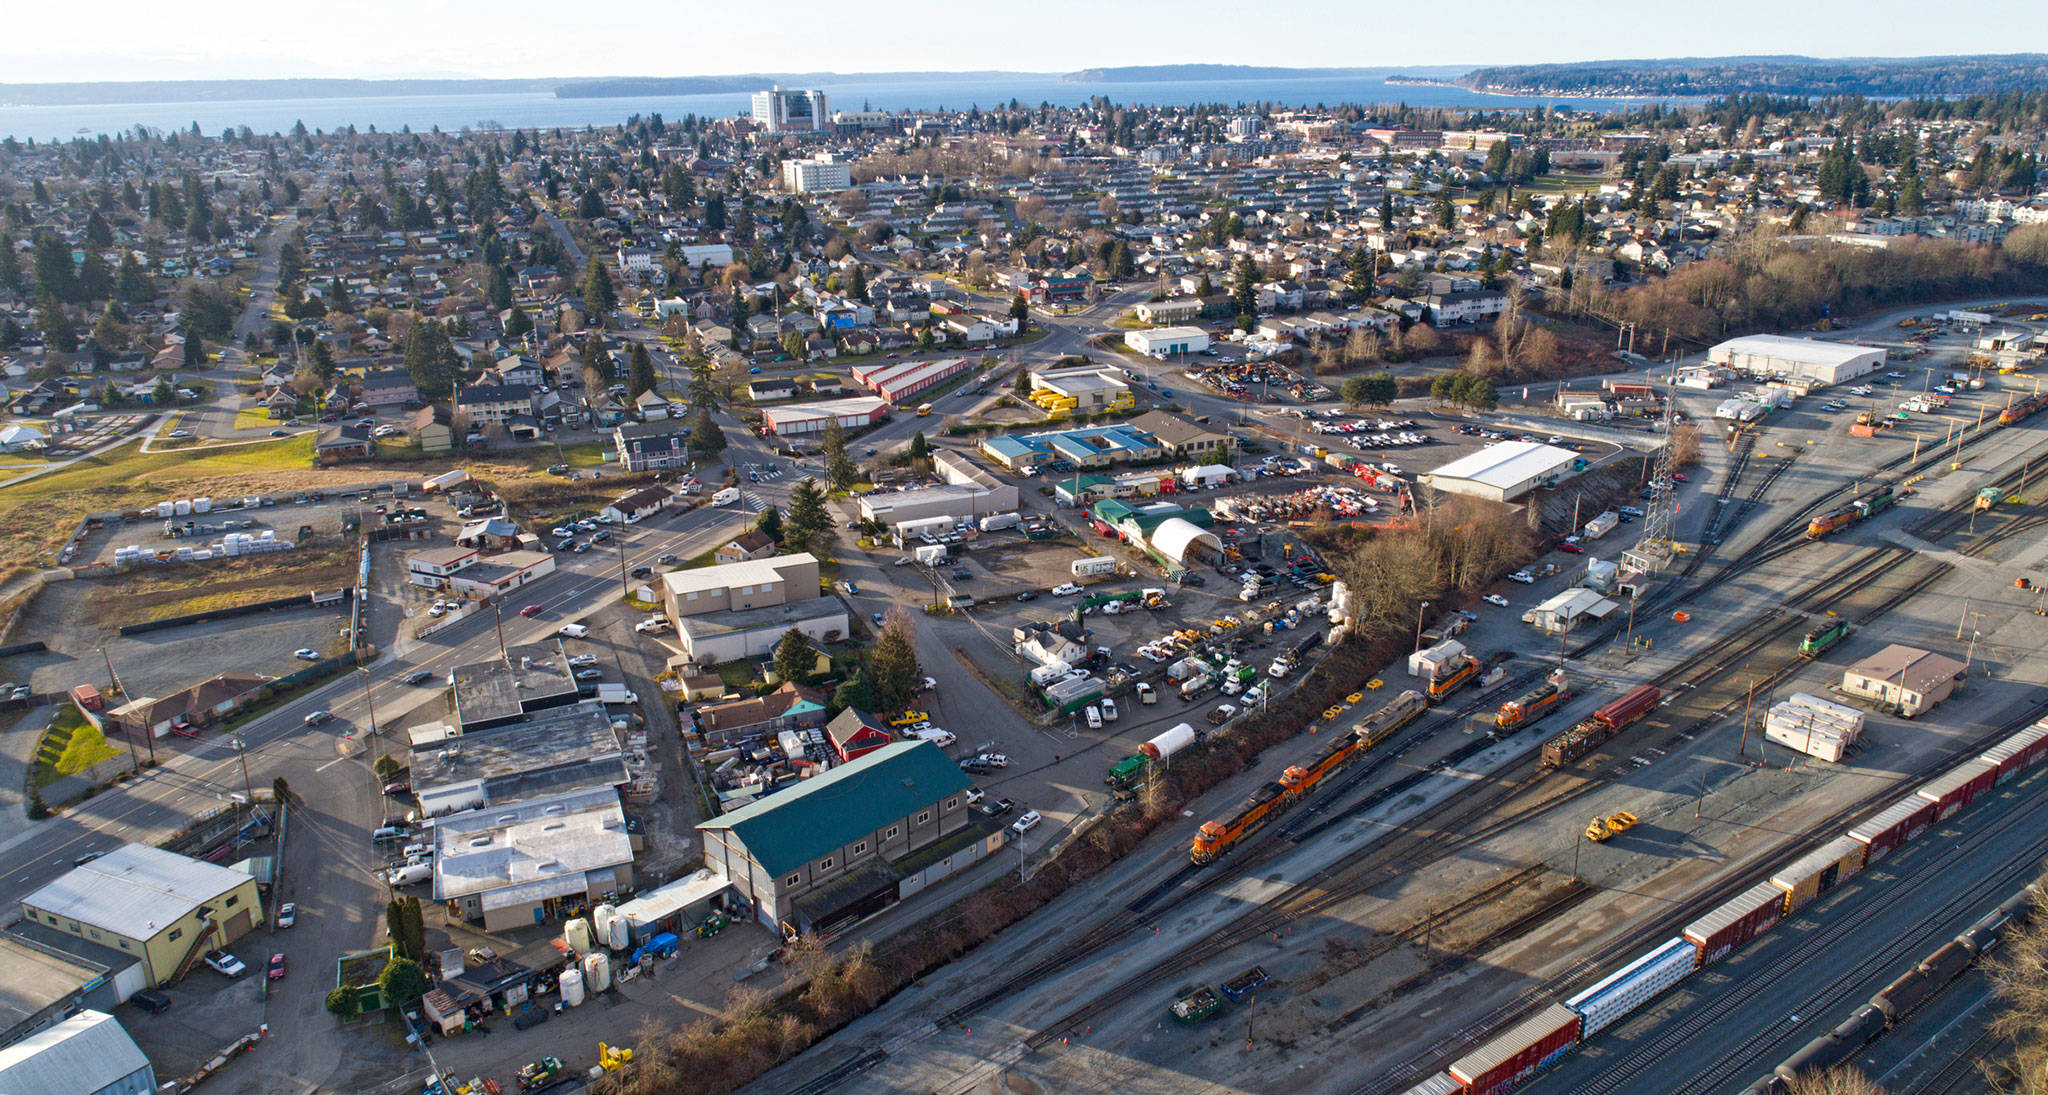 An aerial view of Everett. (Getty images)